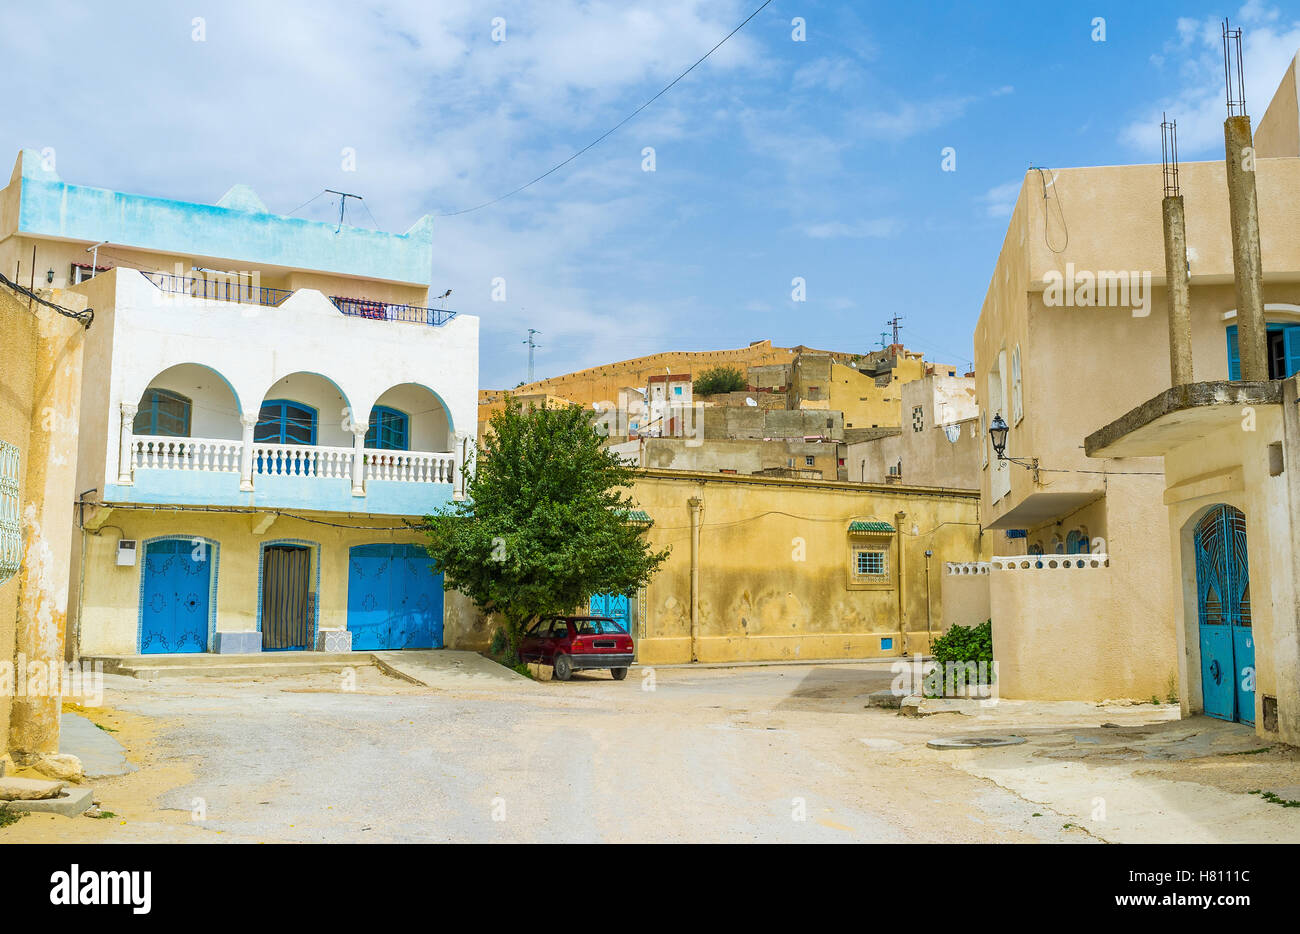 The old town of El Kef consists of maze of streets with traditional arabic houses, Tunisia. - Stock Image